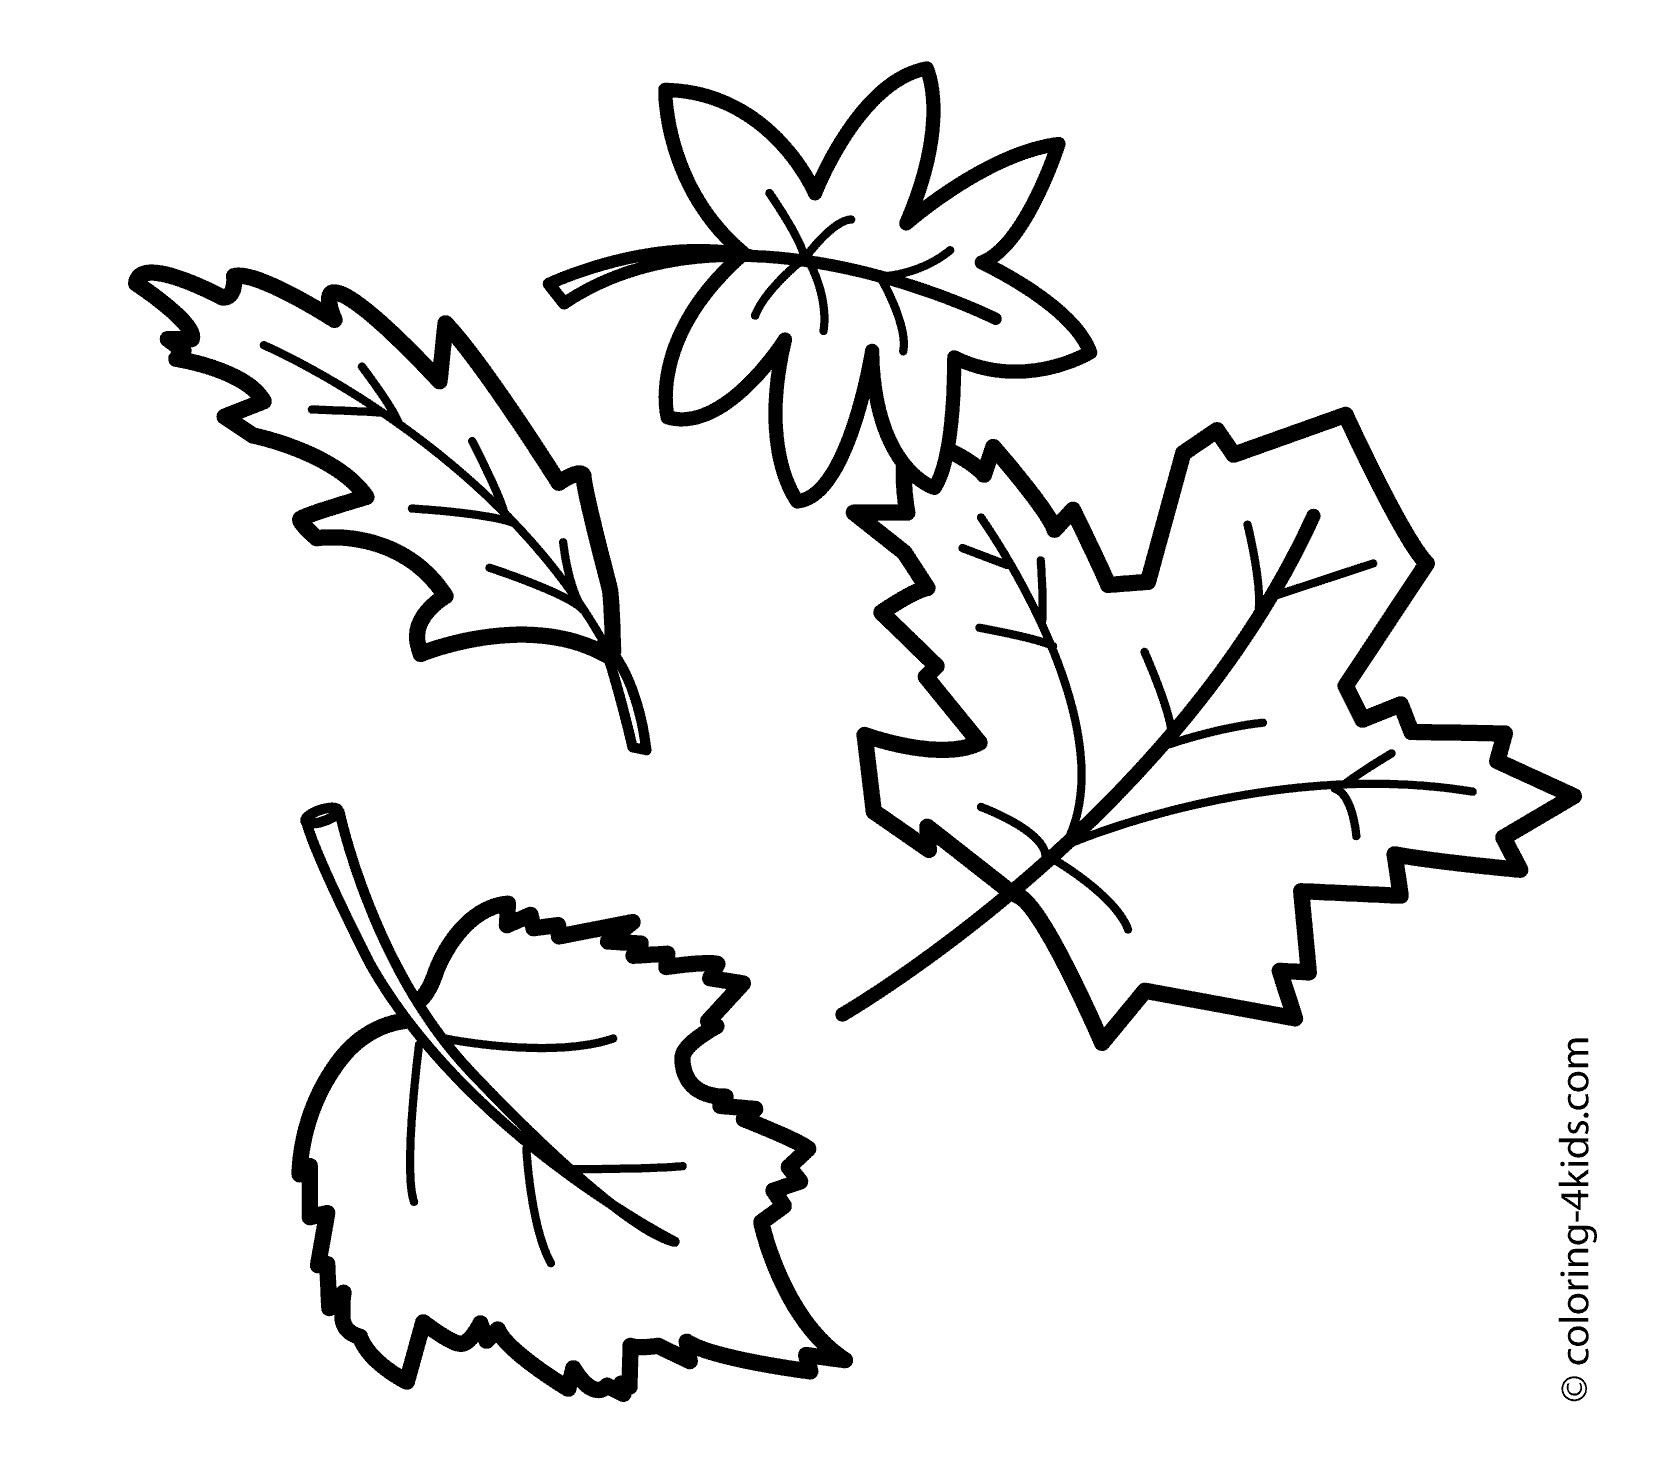 1661x1483 Leaf Coloring Pages For Preschool Lovely Leaves Sheet Acpra